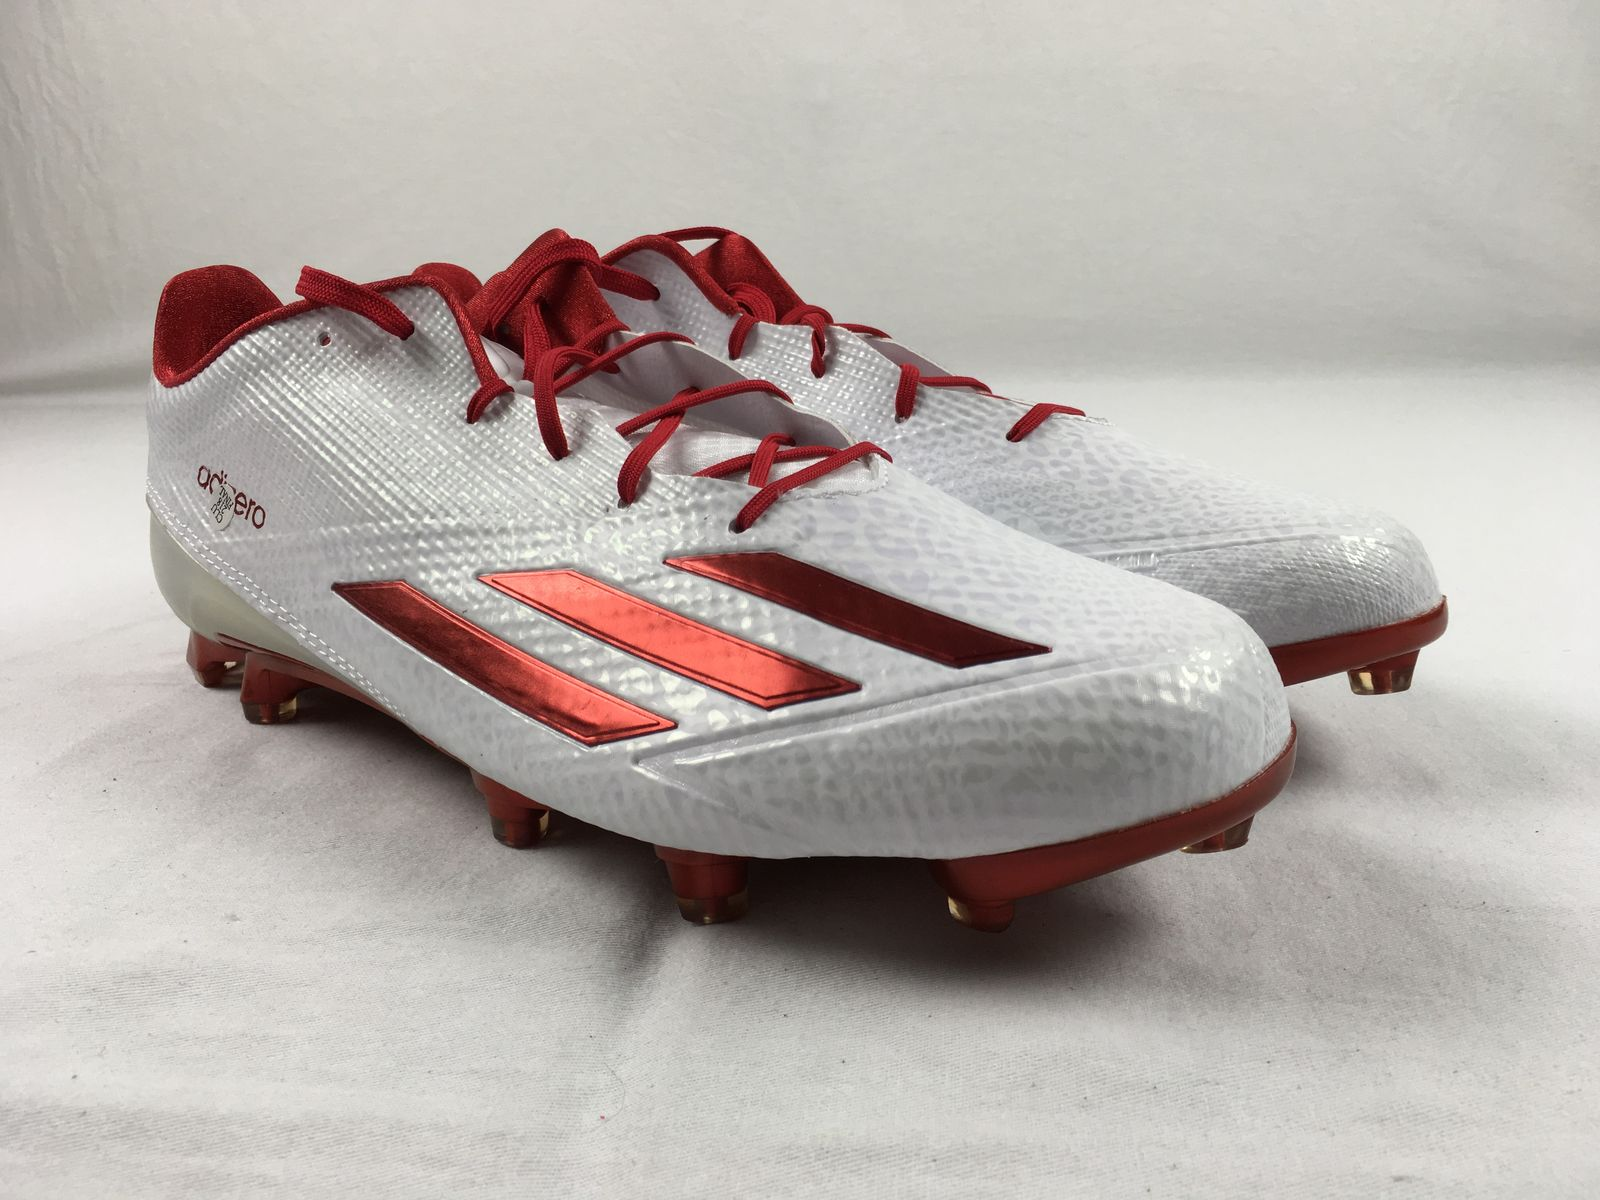 Details about NEW adidas Adizero 5- Star 5.0 - White Red Cleats (Men s  Multiple Sizes) b010eea73